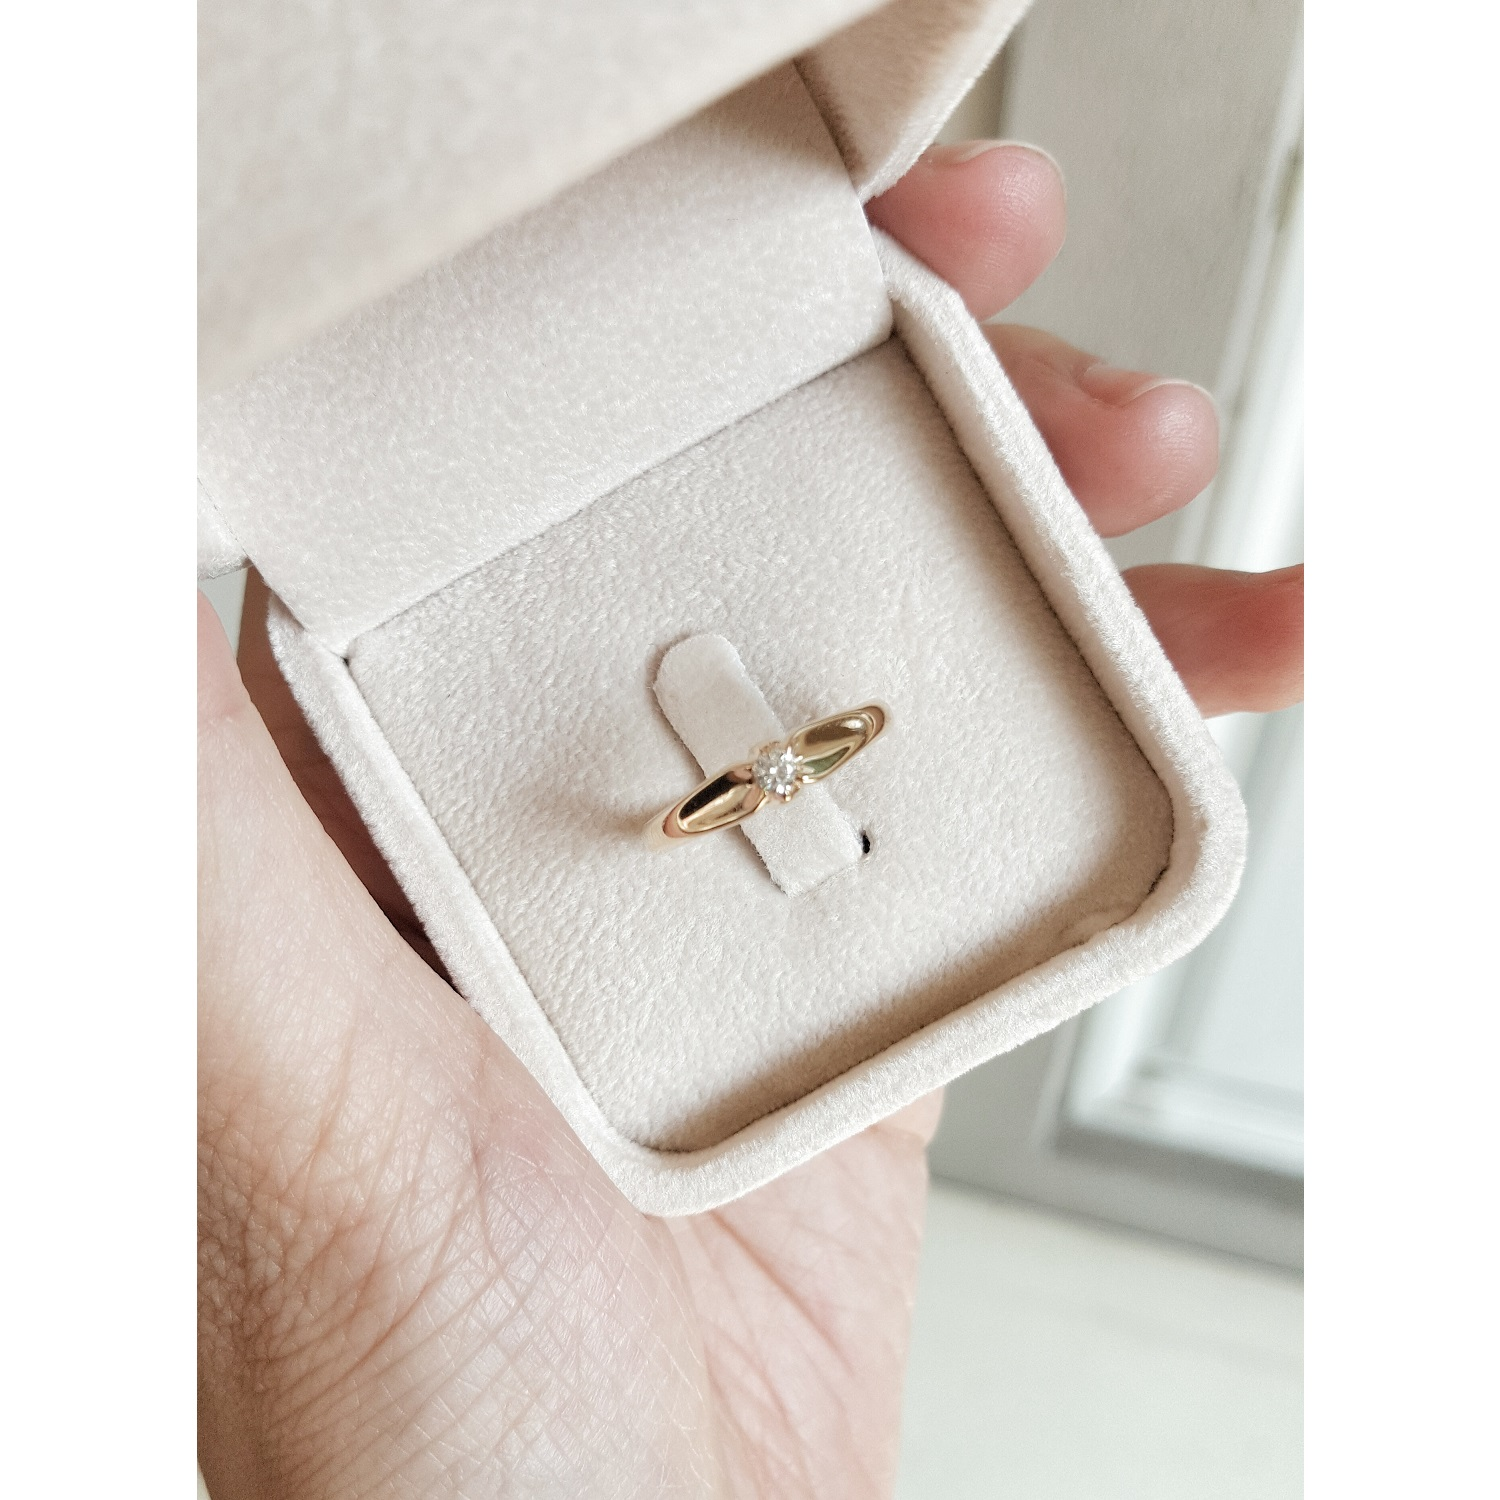 FROU FROU Butterfly Ring Set with 7 Pointer Diamond